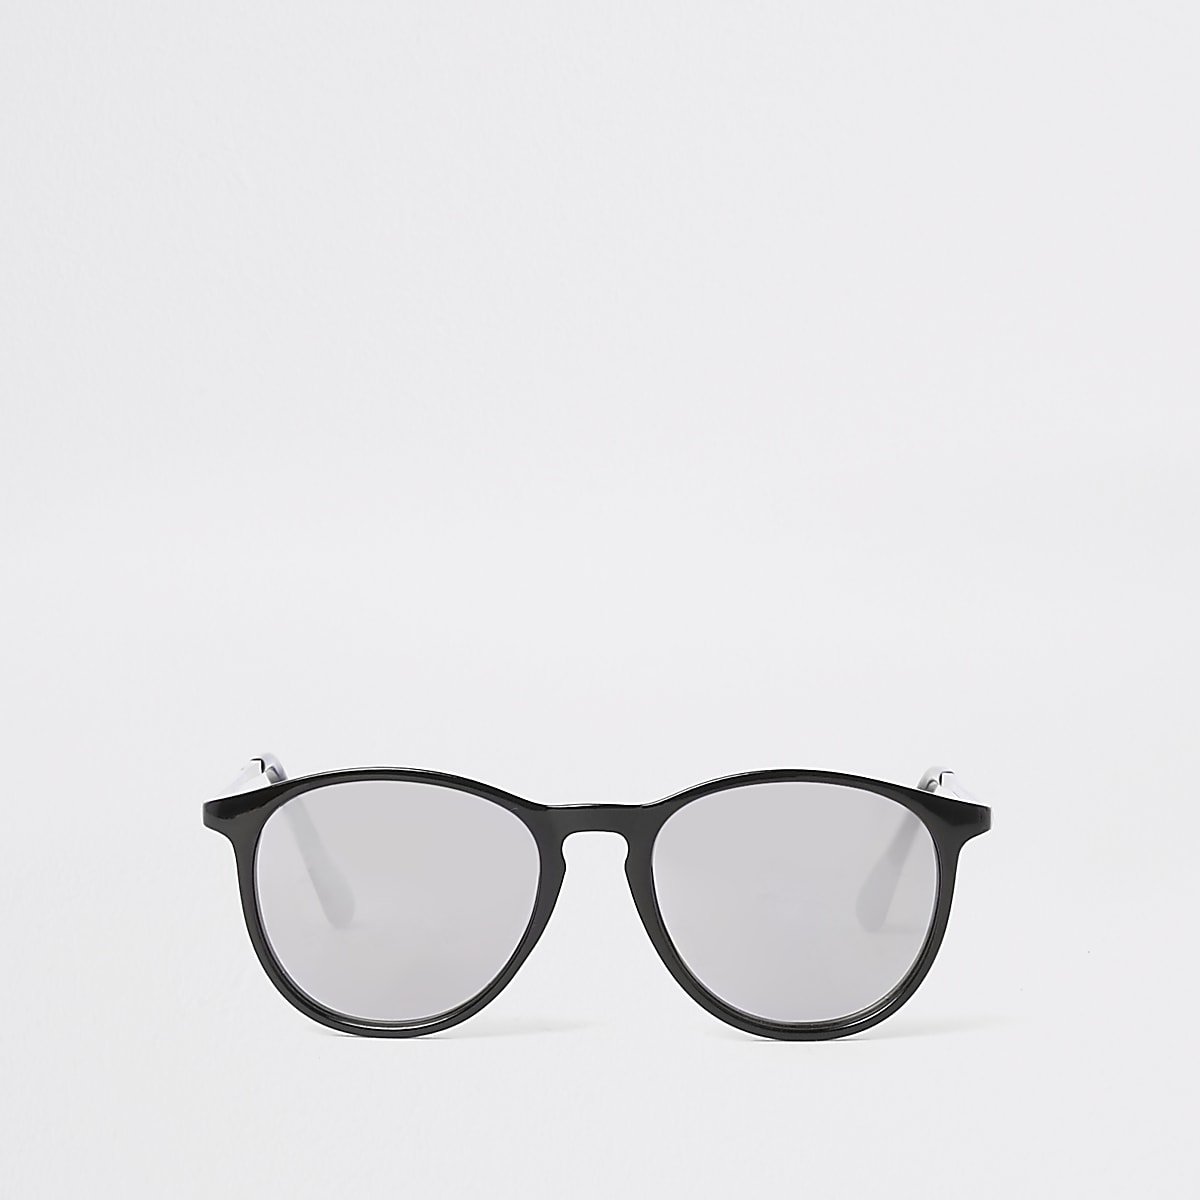 Boys black retro smoke lens retro sunglasses